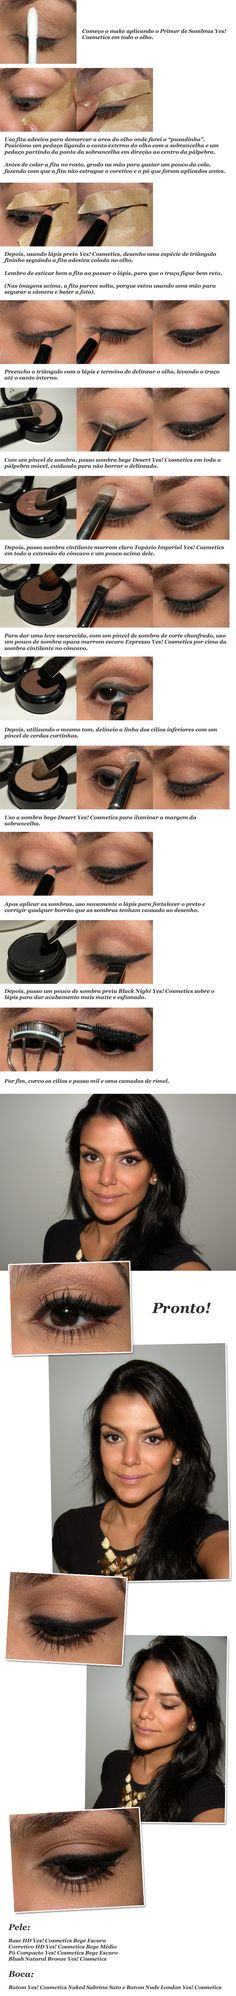 how-to eyeliner